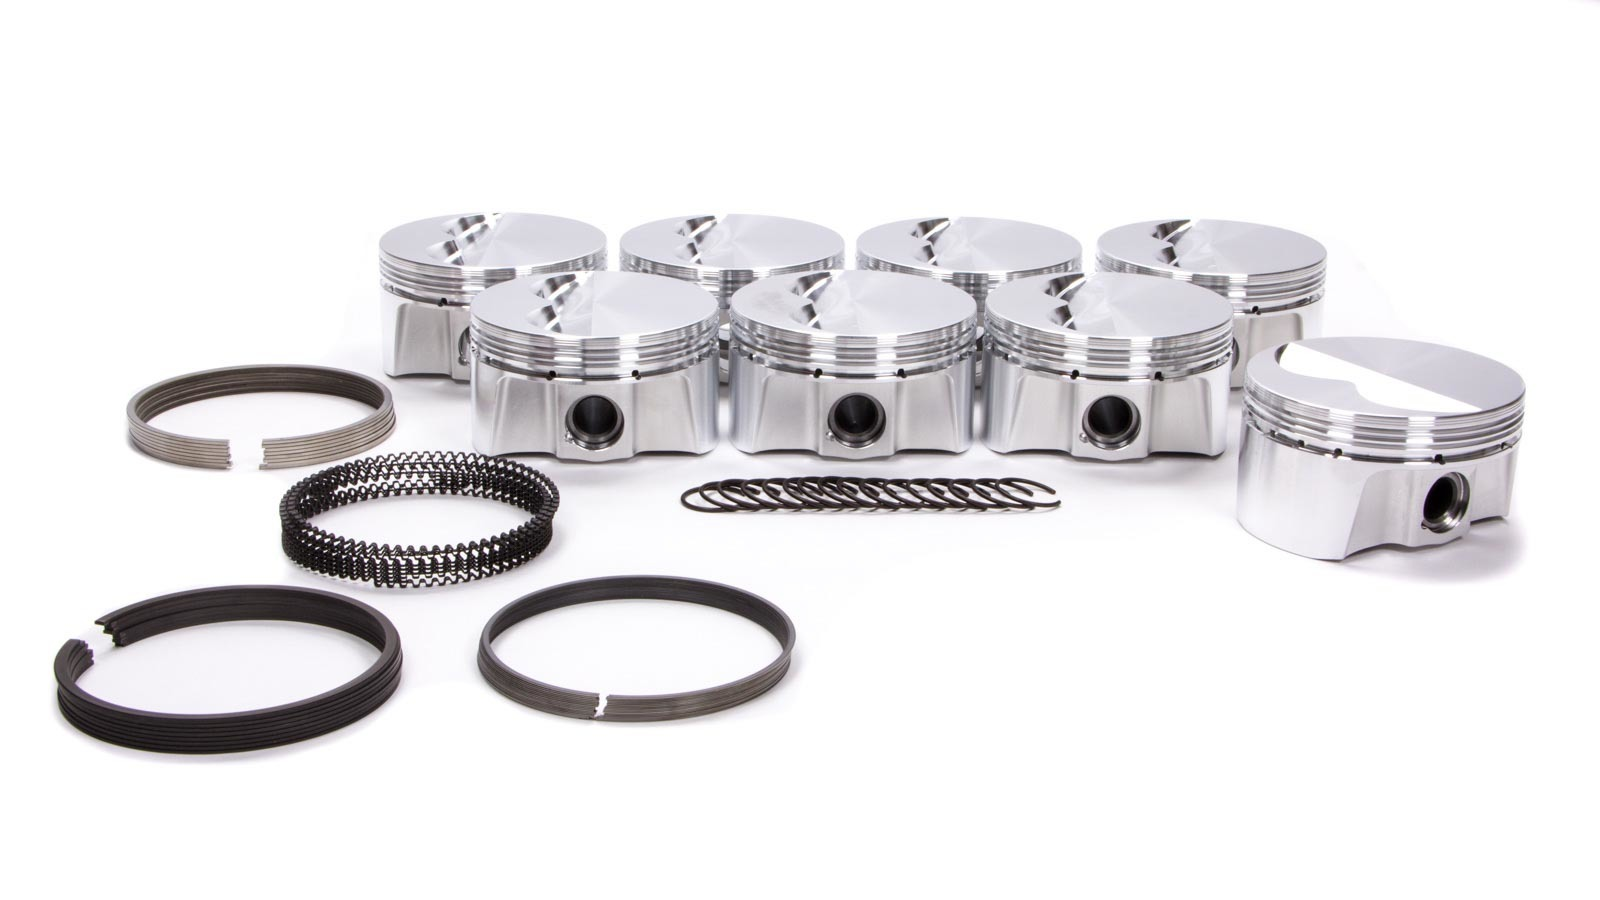 Bullet Pistons BC1021-STD-8 Piston and Ring, Forged, 4.000 in Bore, 1.5 x 1.5 x 3 mm Ring Grooves, Minus 6.8 cc, Small Block Chevy, Kit